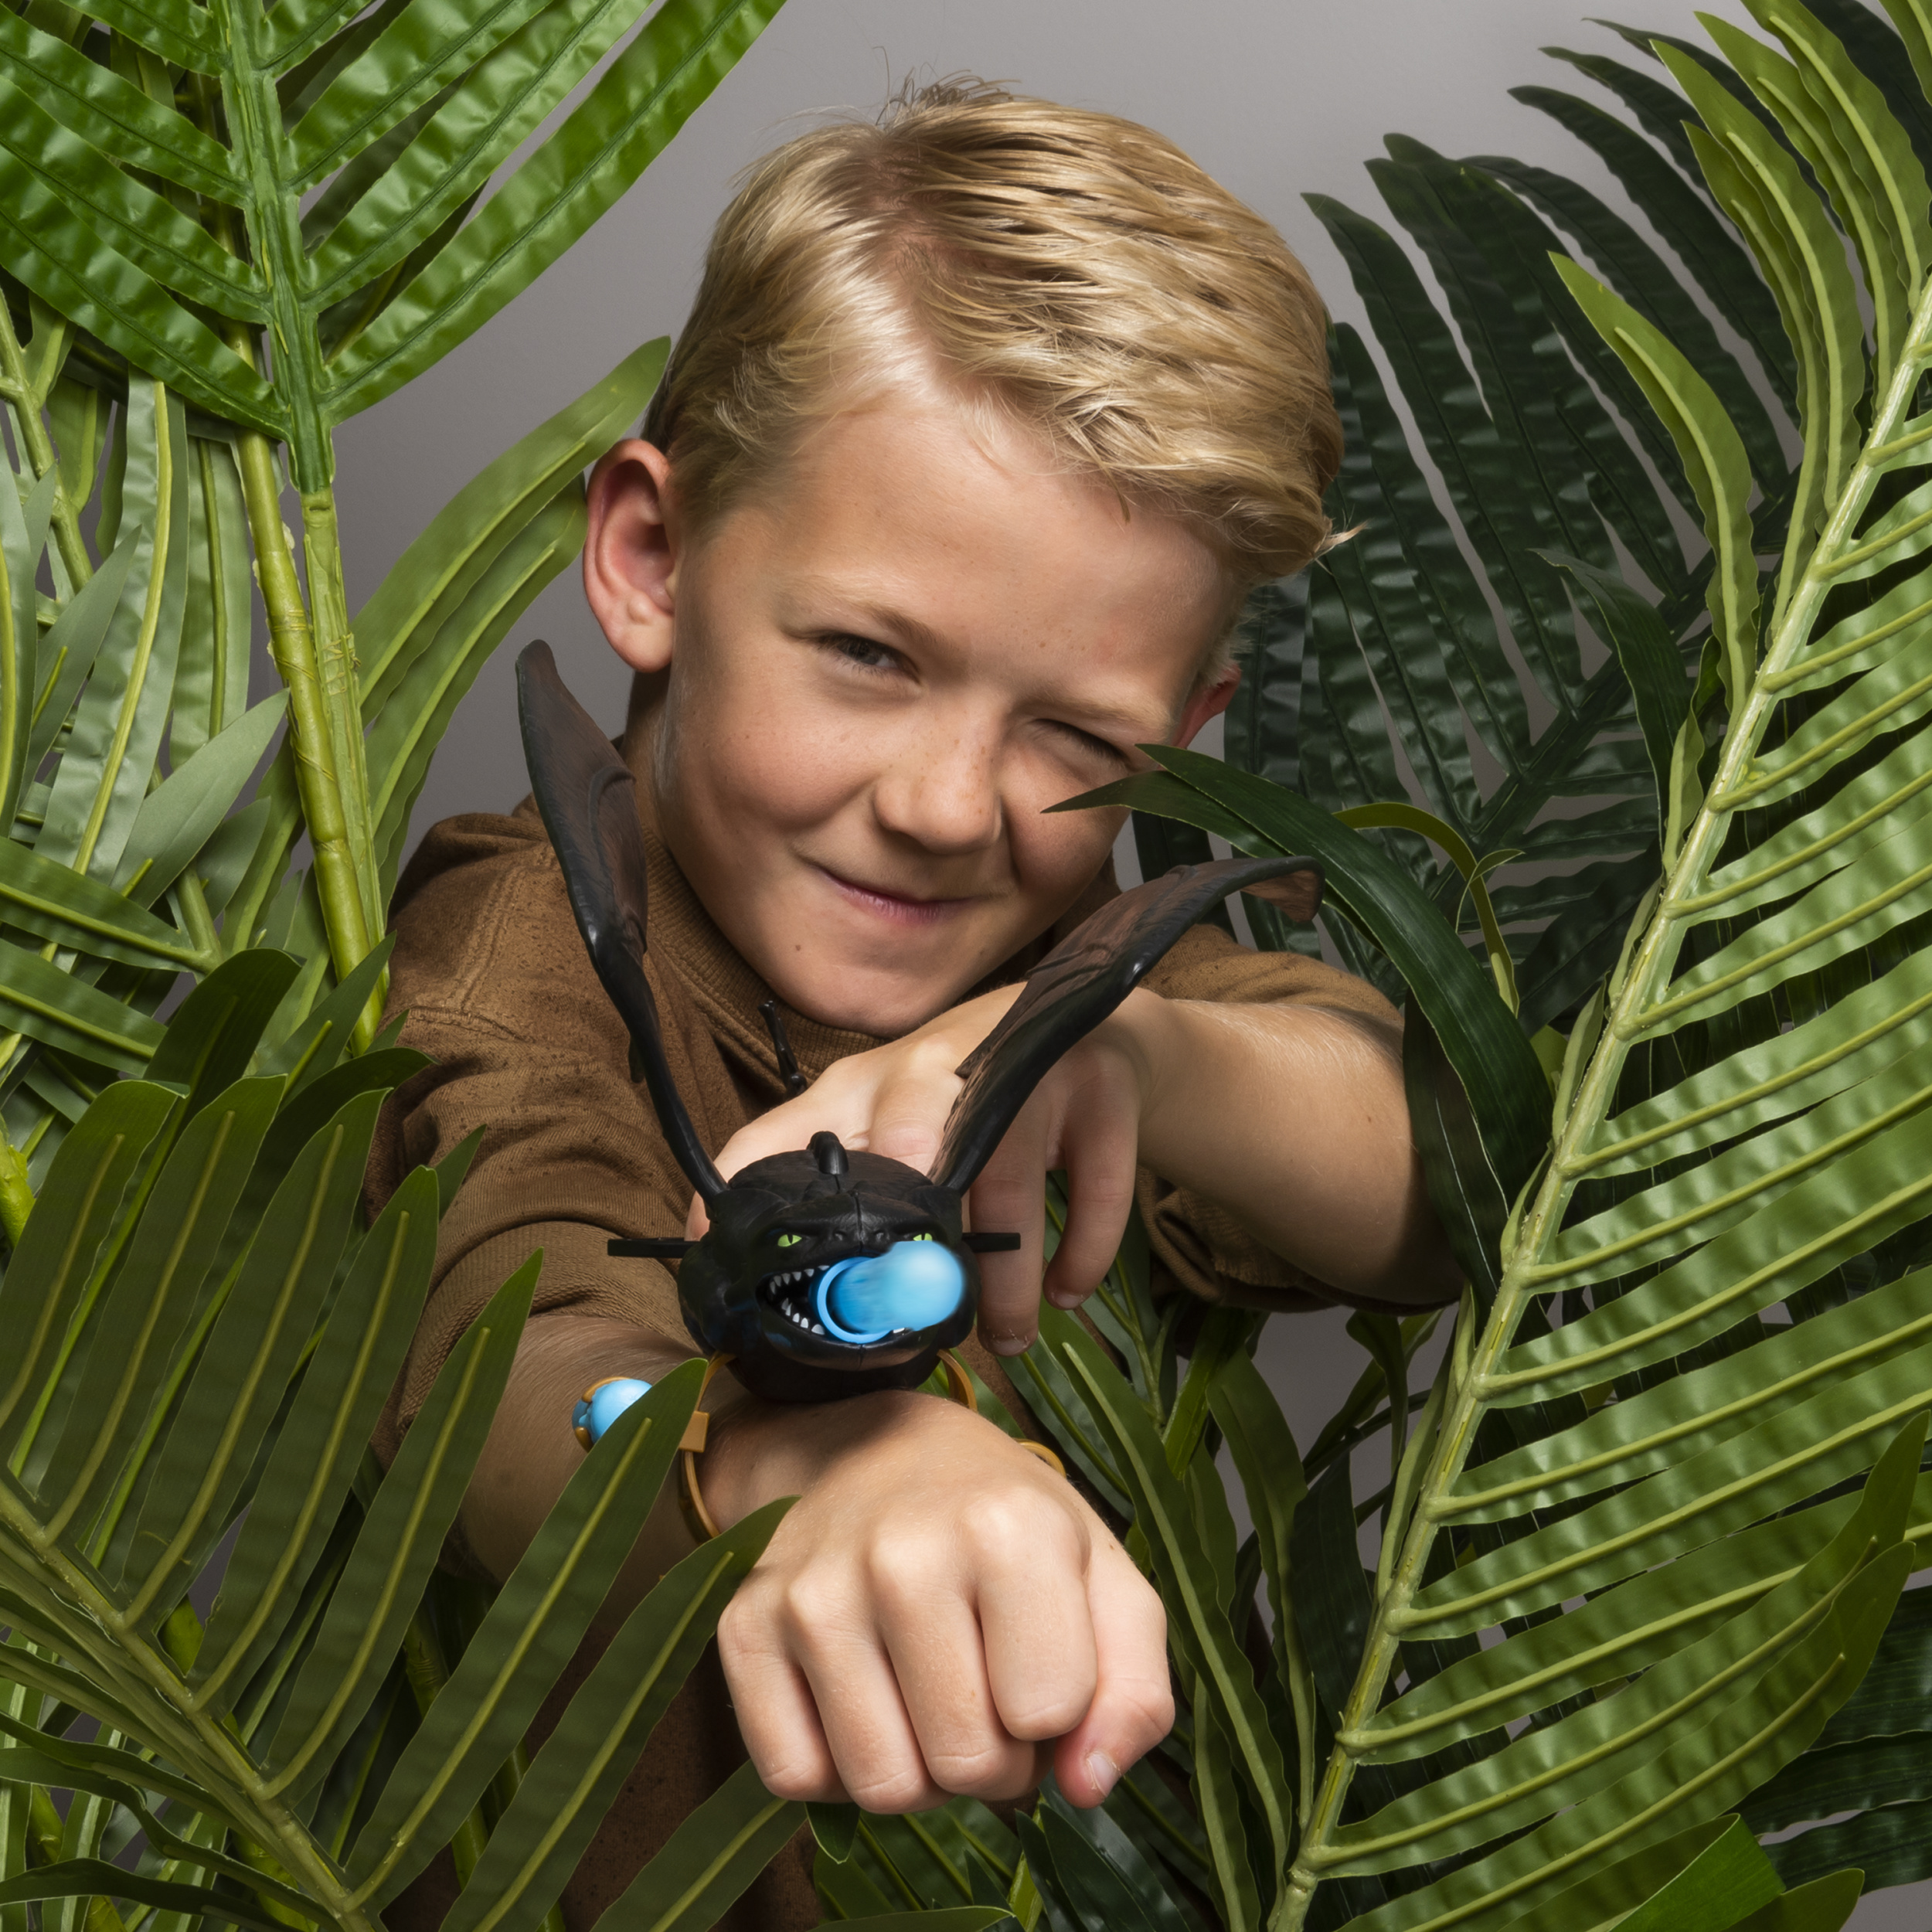 Role-Play Launcher Accessory for Kids Aged 4 /& Up Dreamworks Dragons Toothless Wrist Launcher